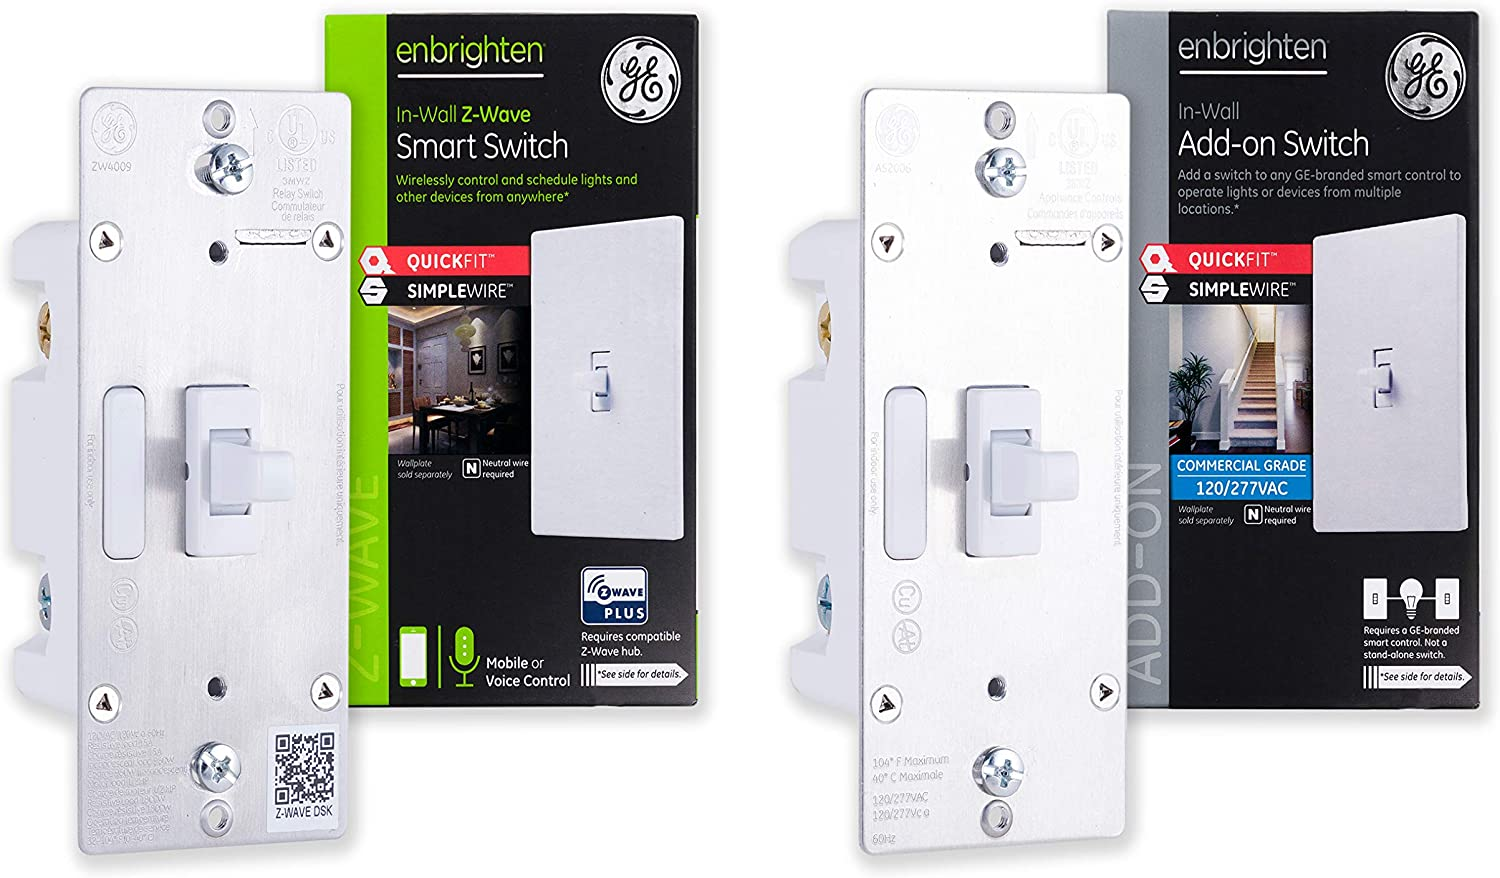 GE Enbrighten Z-Wave Plus Smart Light Switch Kit with QuickFit and SimpleWire, 3-Way Ready, Works with Alexa, Google Assistant, Zwave Hub Required, 1 Switch + 1 Add-On, Toggle, 47864,White 1-pack